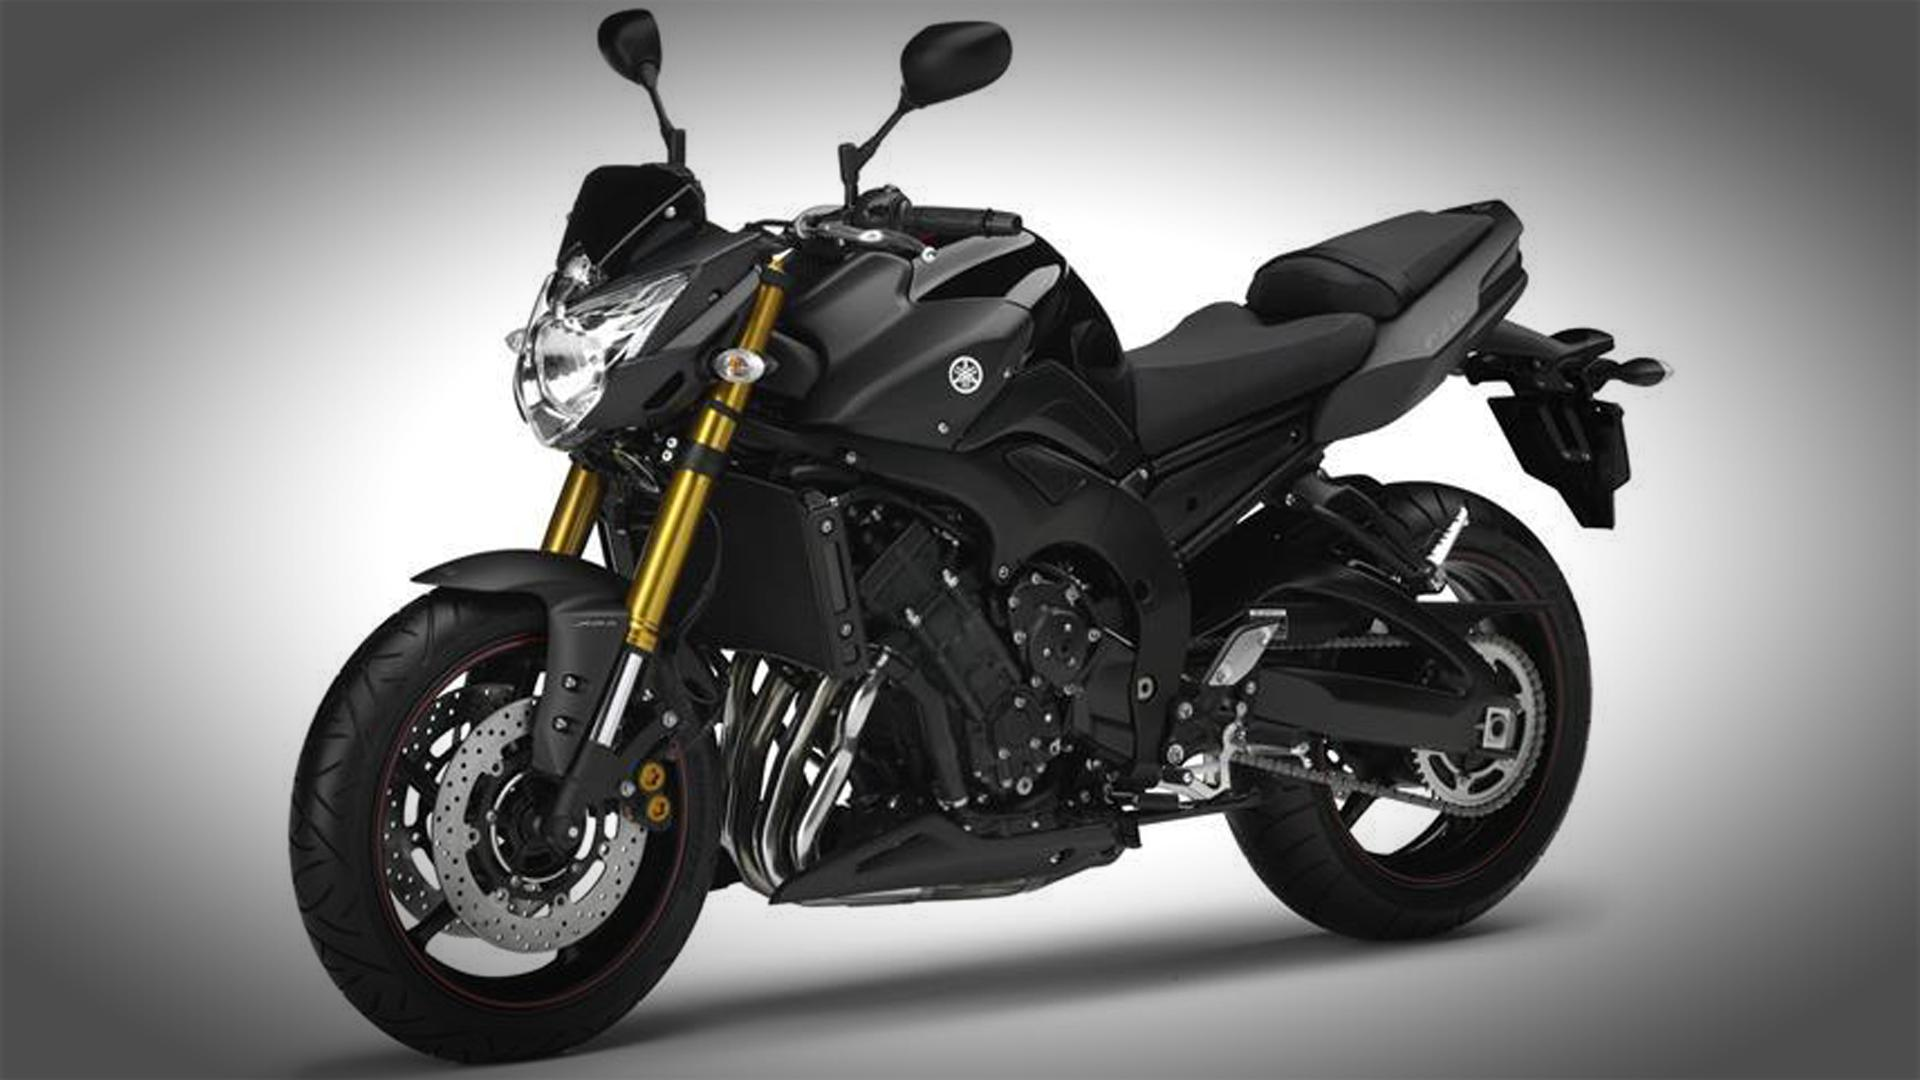 new car release in india 2015Top 10 Bike Companies In The World  TVM